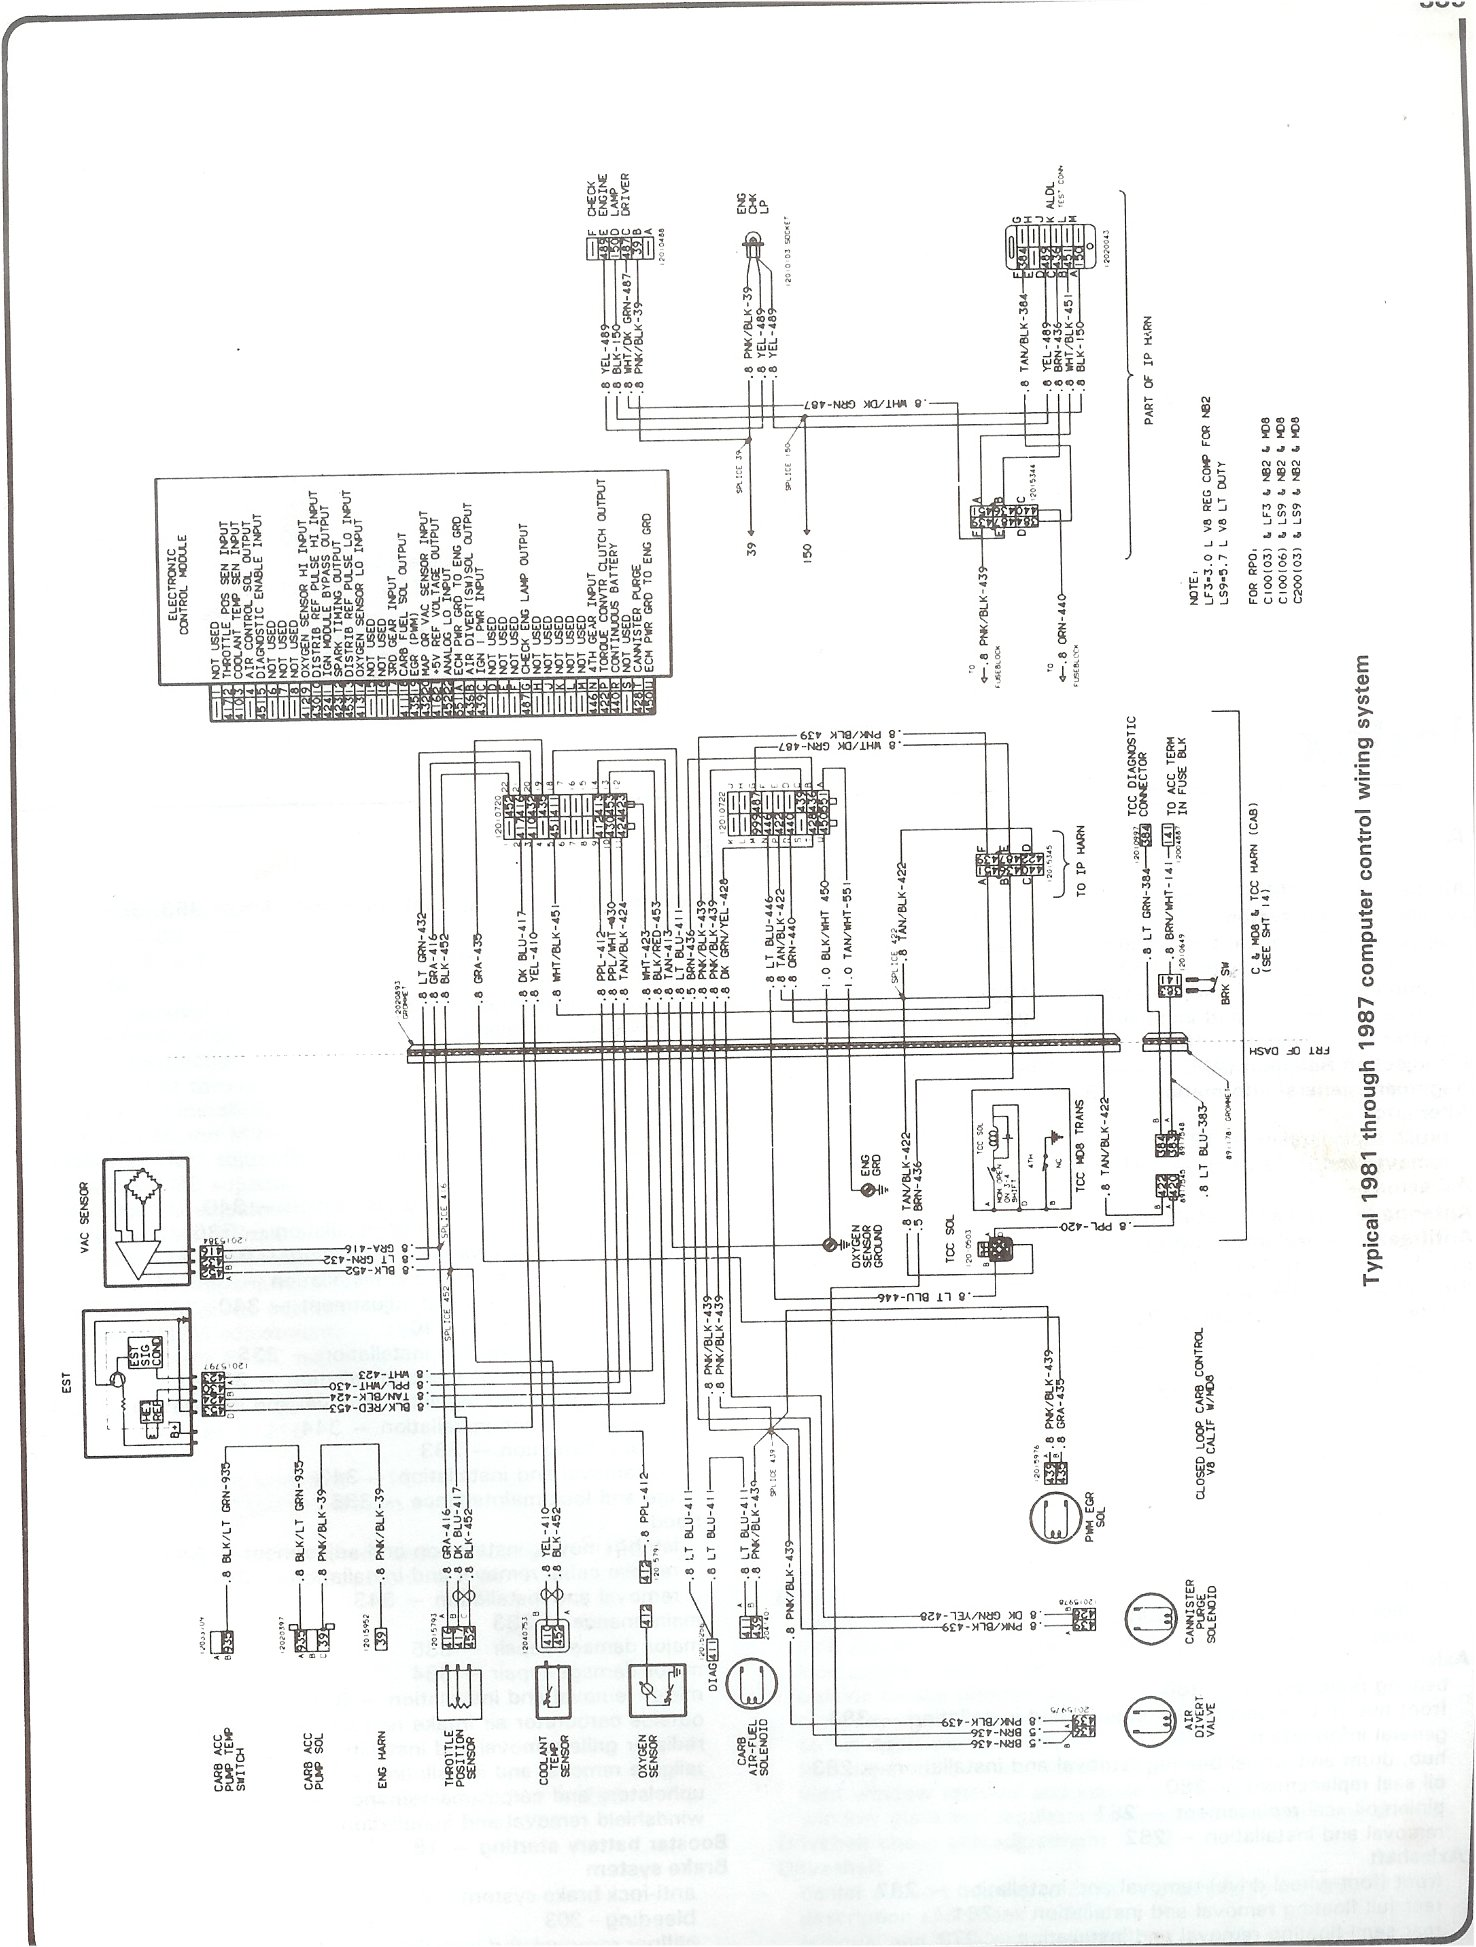 81 87_computer_control_wiring complete 73 87 wiring diagrams 56 chevy truck wiring harness at n-0.co